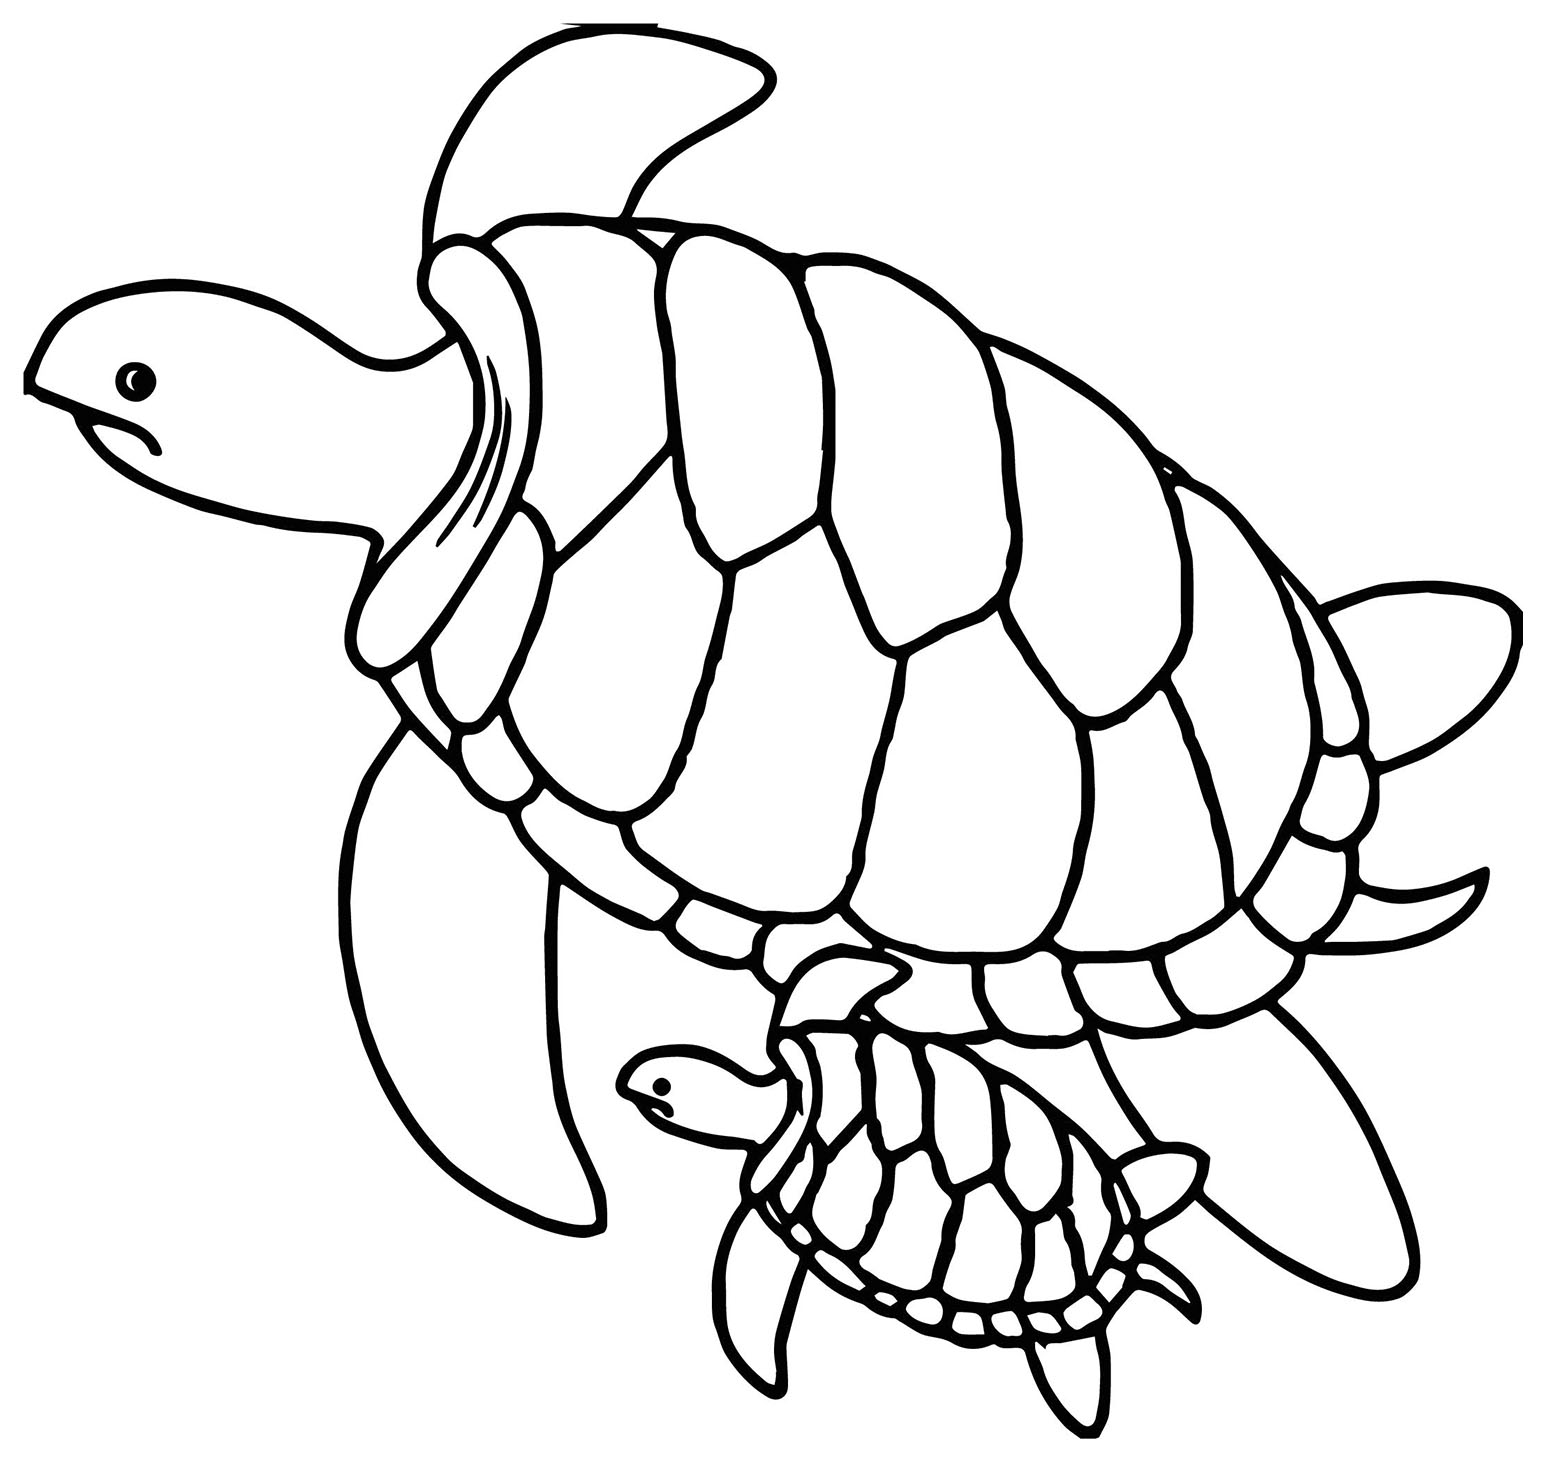 images of turtles to color pictures of reptiles for kids clipartsco images of to color turtles